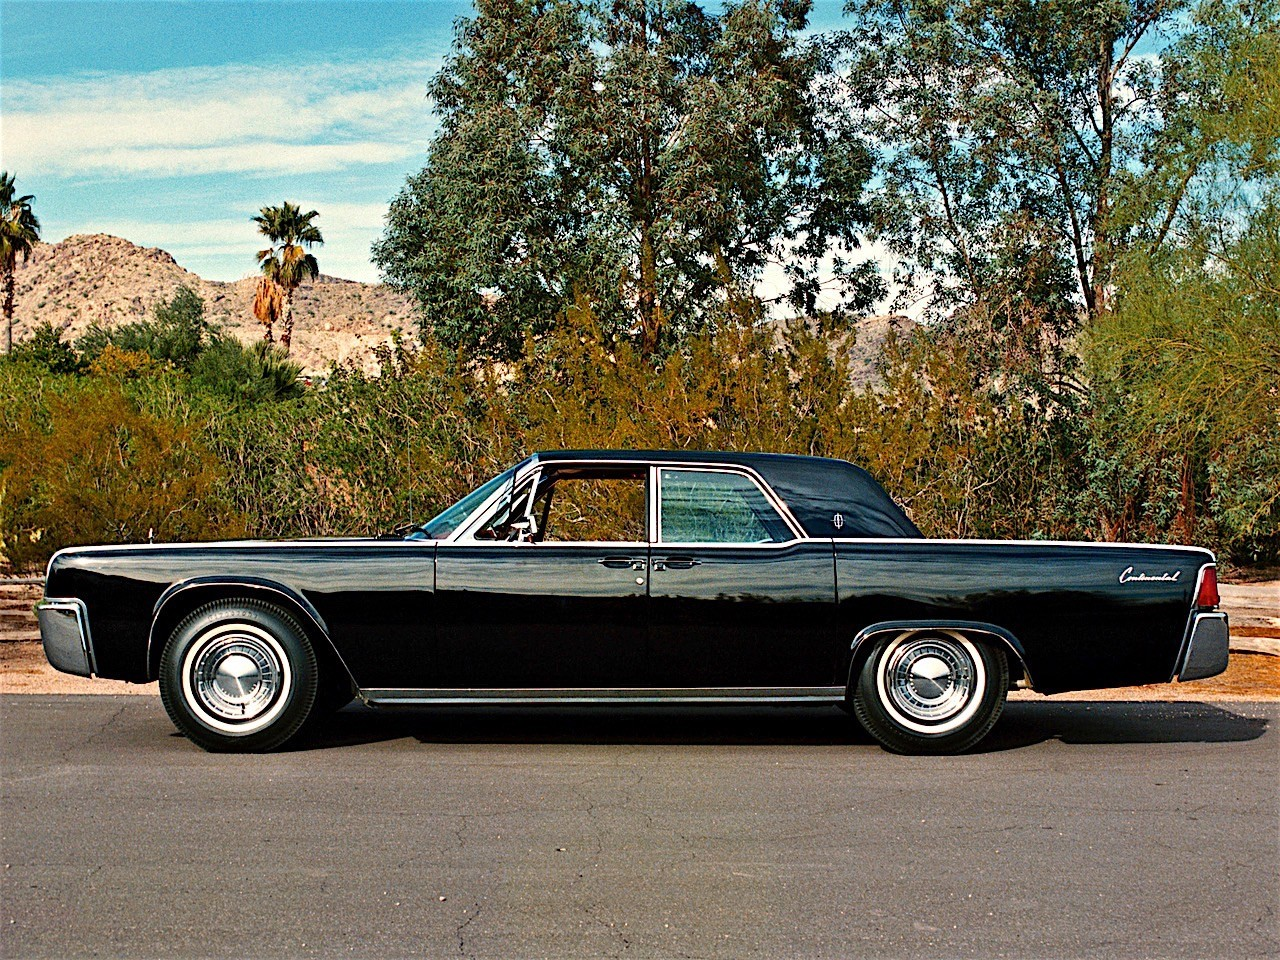 lincoln continental specs 1961 1962 1963 1964 1965 1966 1967 1968 1969 autoevolution. Black Bedroom Furniture Sets. Home Design Ideas